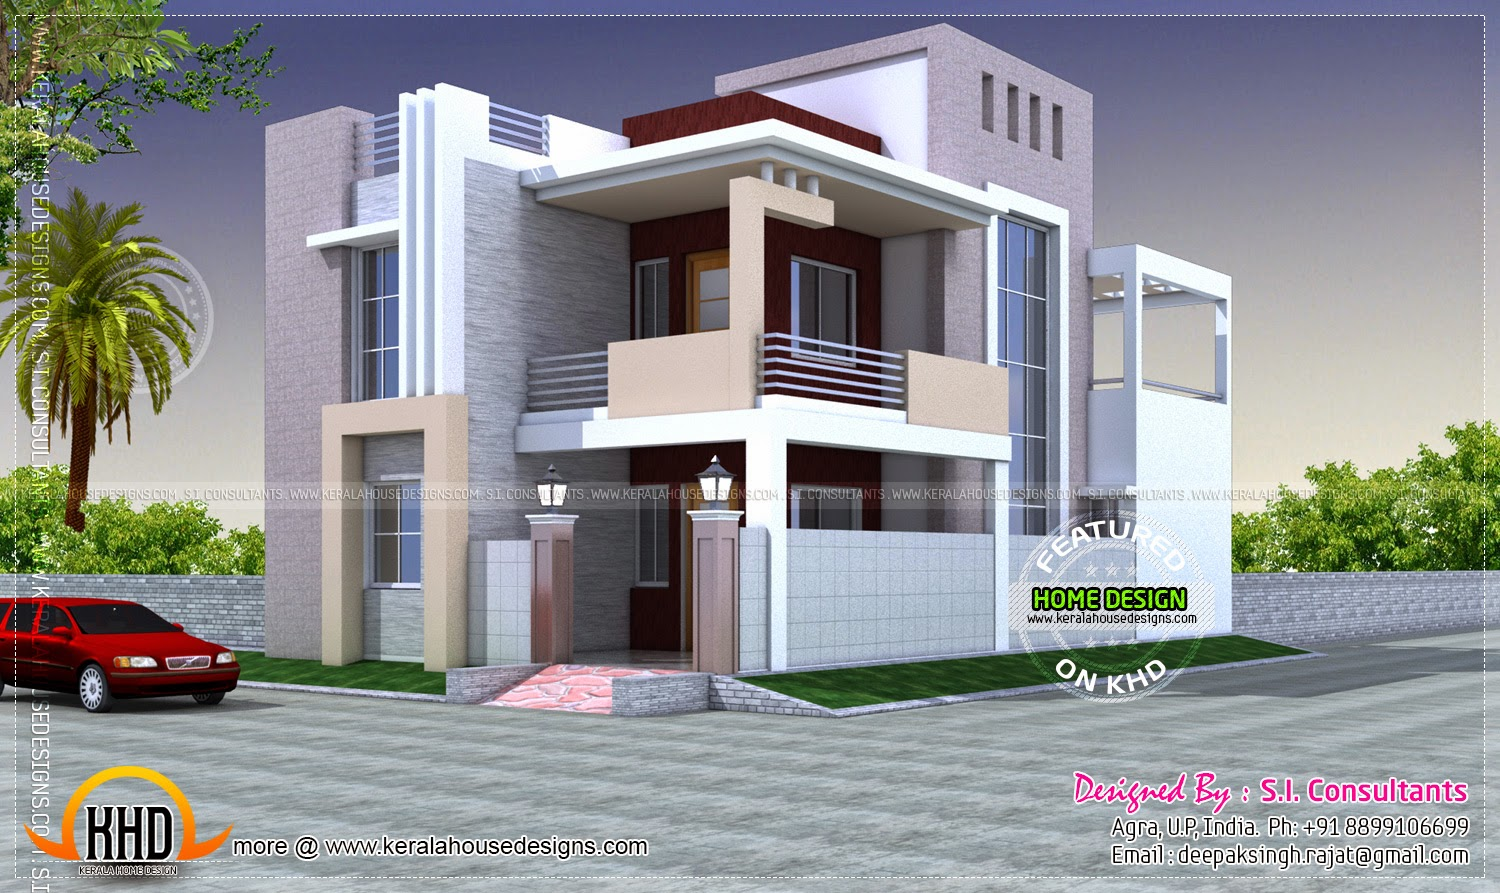 House exterior elevation modern style kerala home design for Exterior house designs indian style